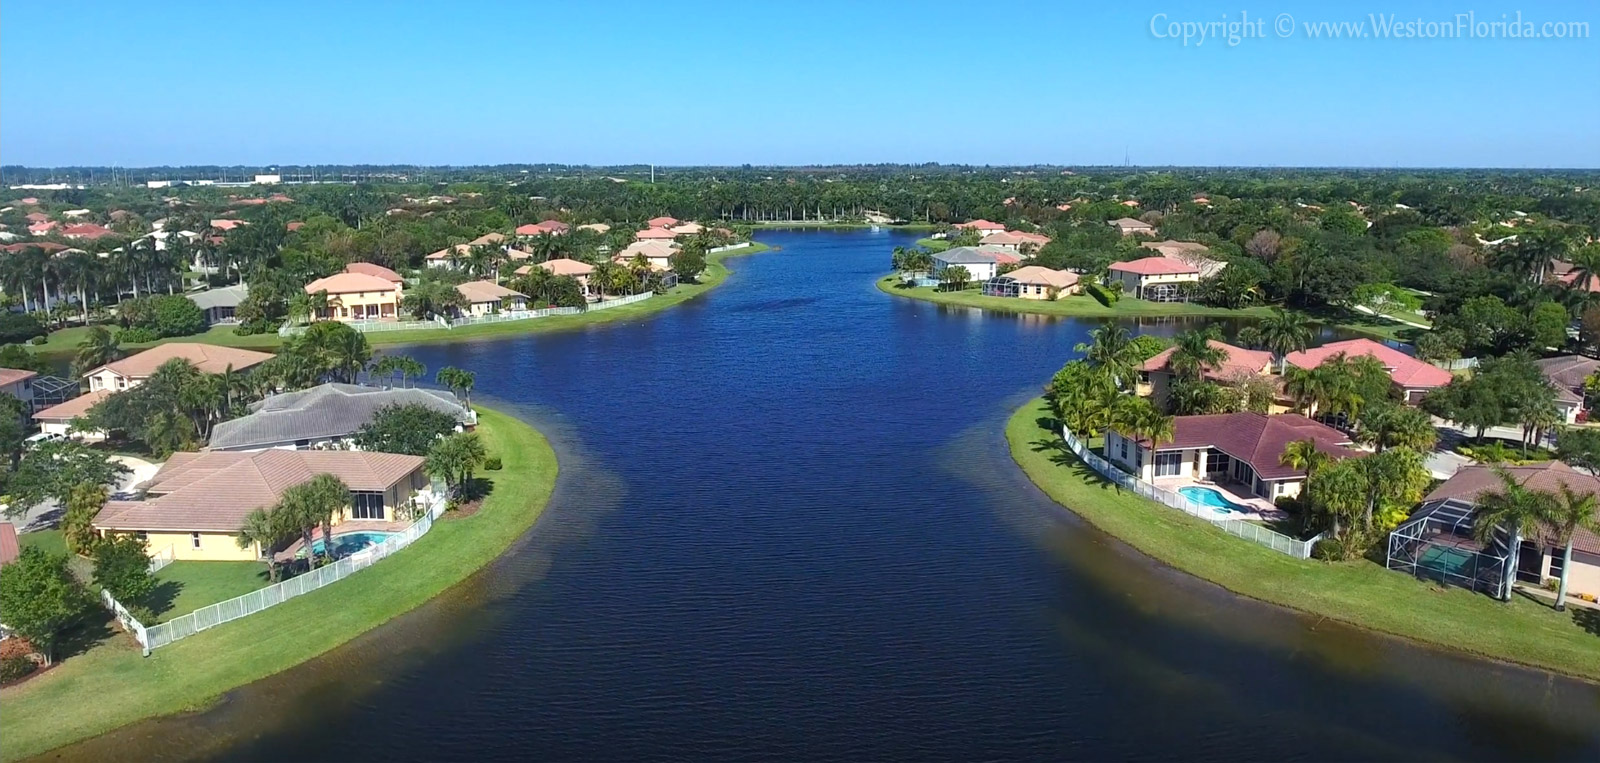 Amazing aerial view of Weston Florida